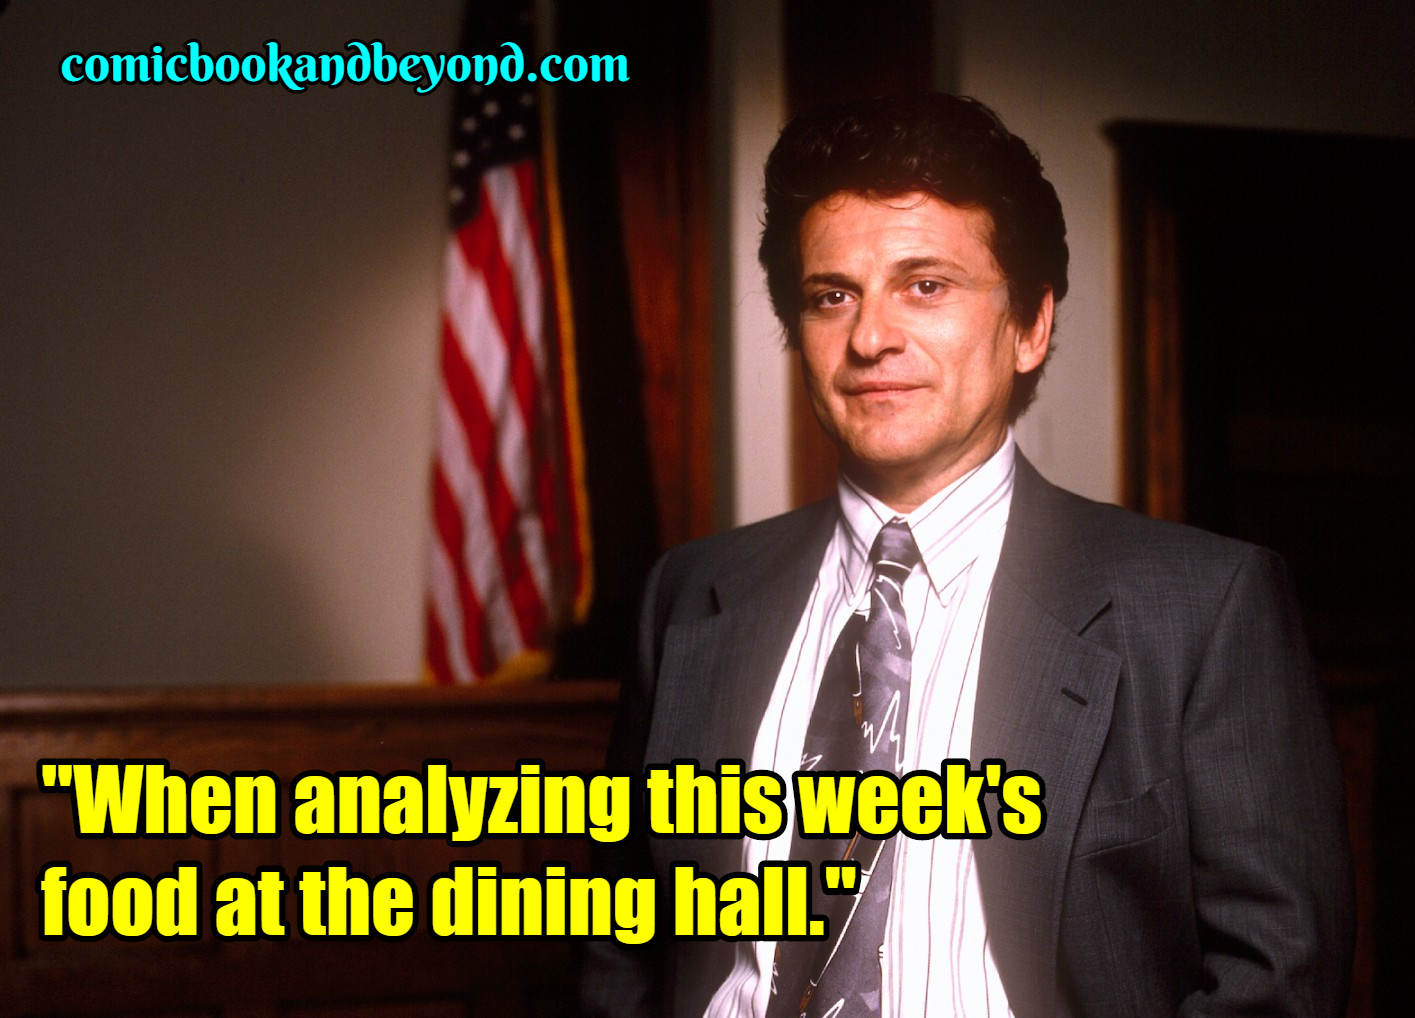 100+ My Cousin Vinny Quotes About The Case Of A Novice Attorney - Comic Books & Beyond